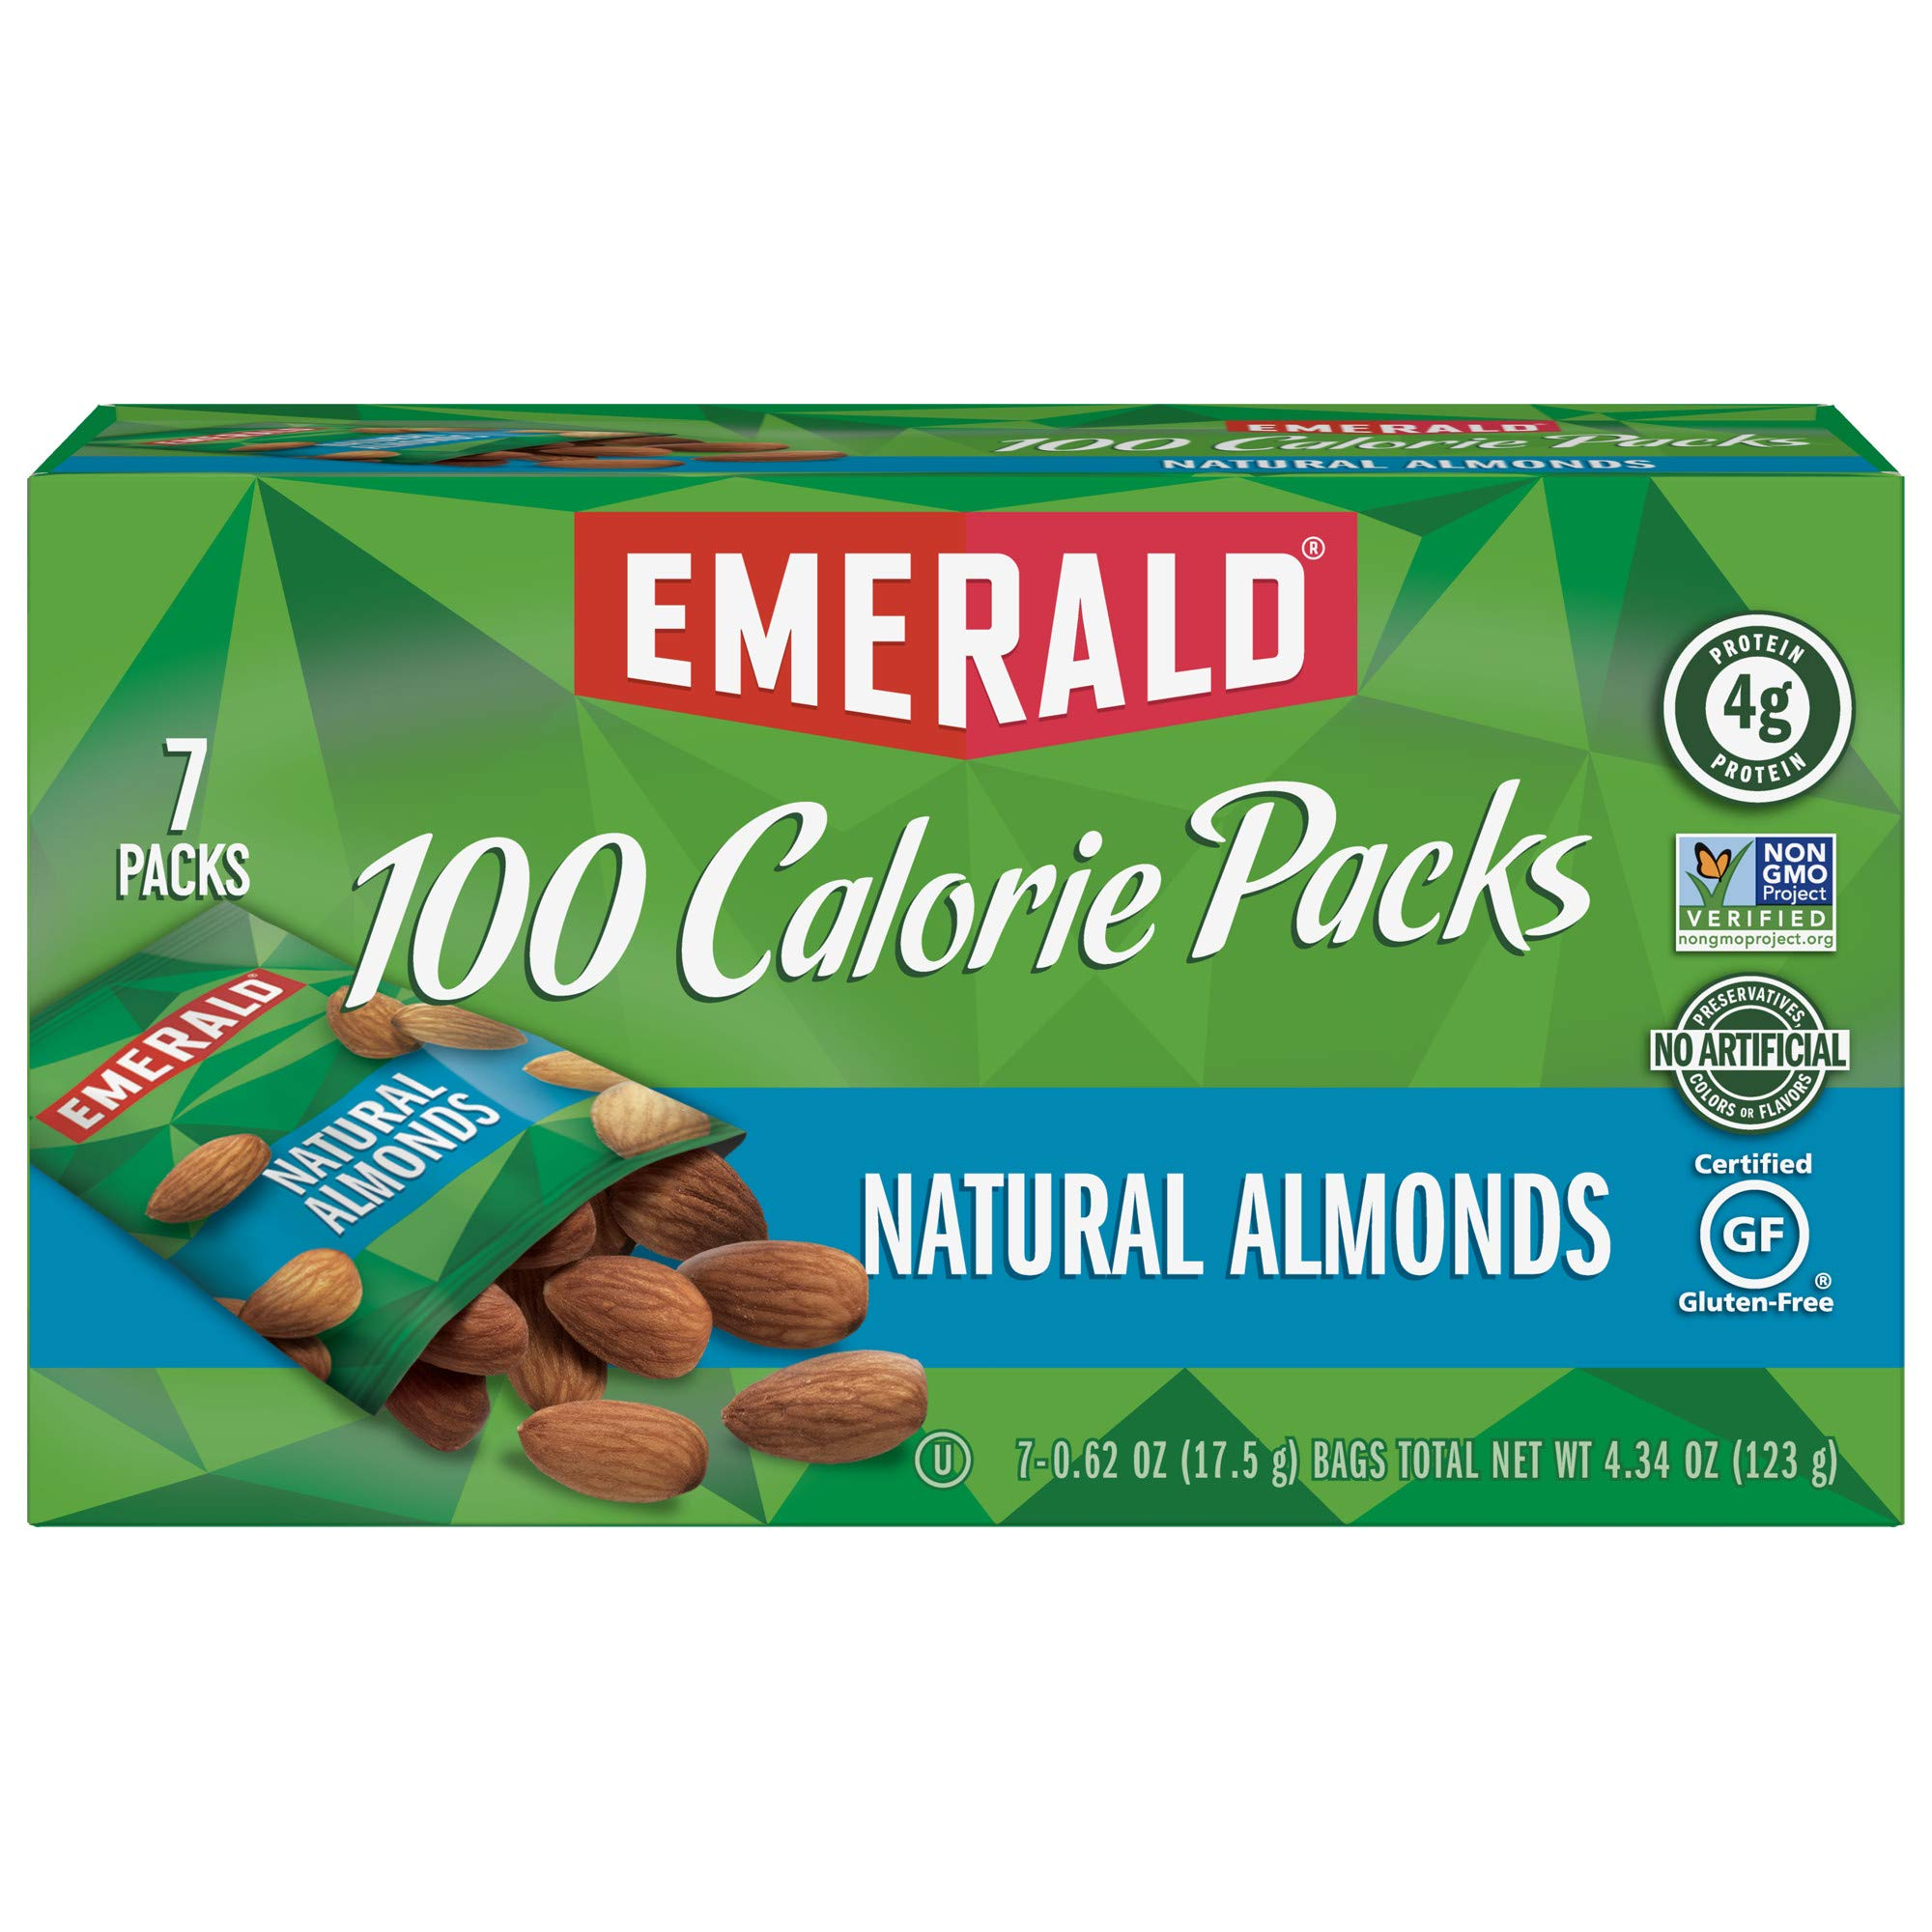 Emerald Nuts, Natural Almonds 100 Calorie Packs, 7 Count Boxes (Pack of 12